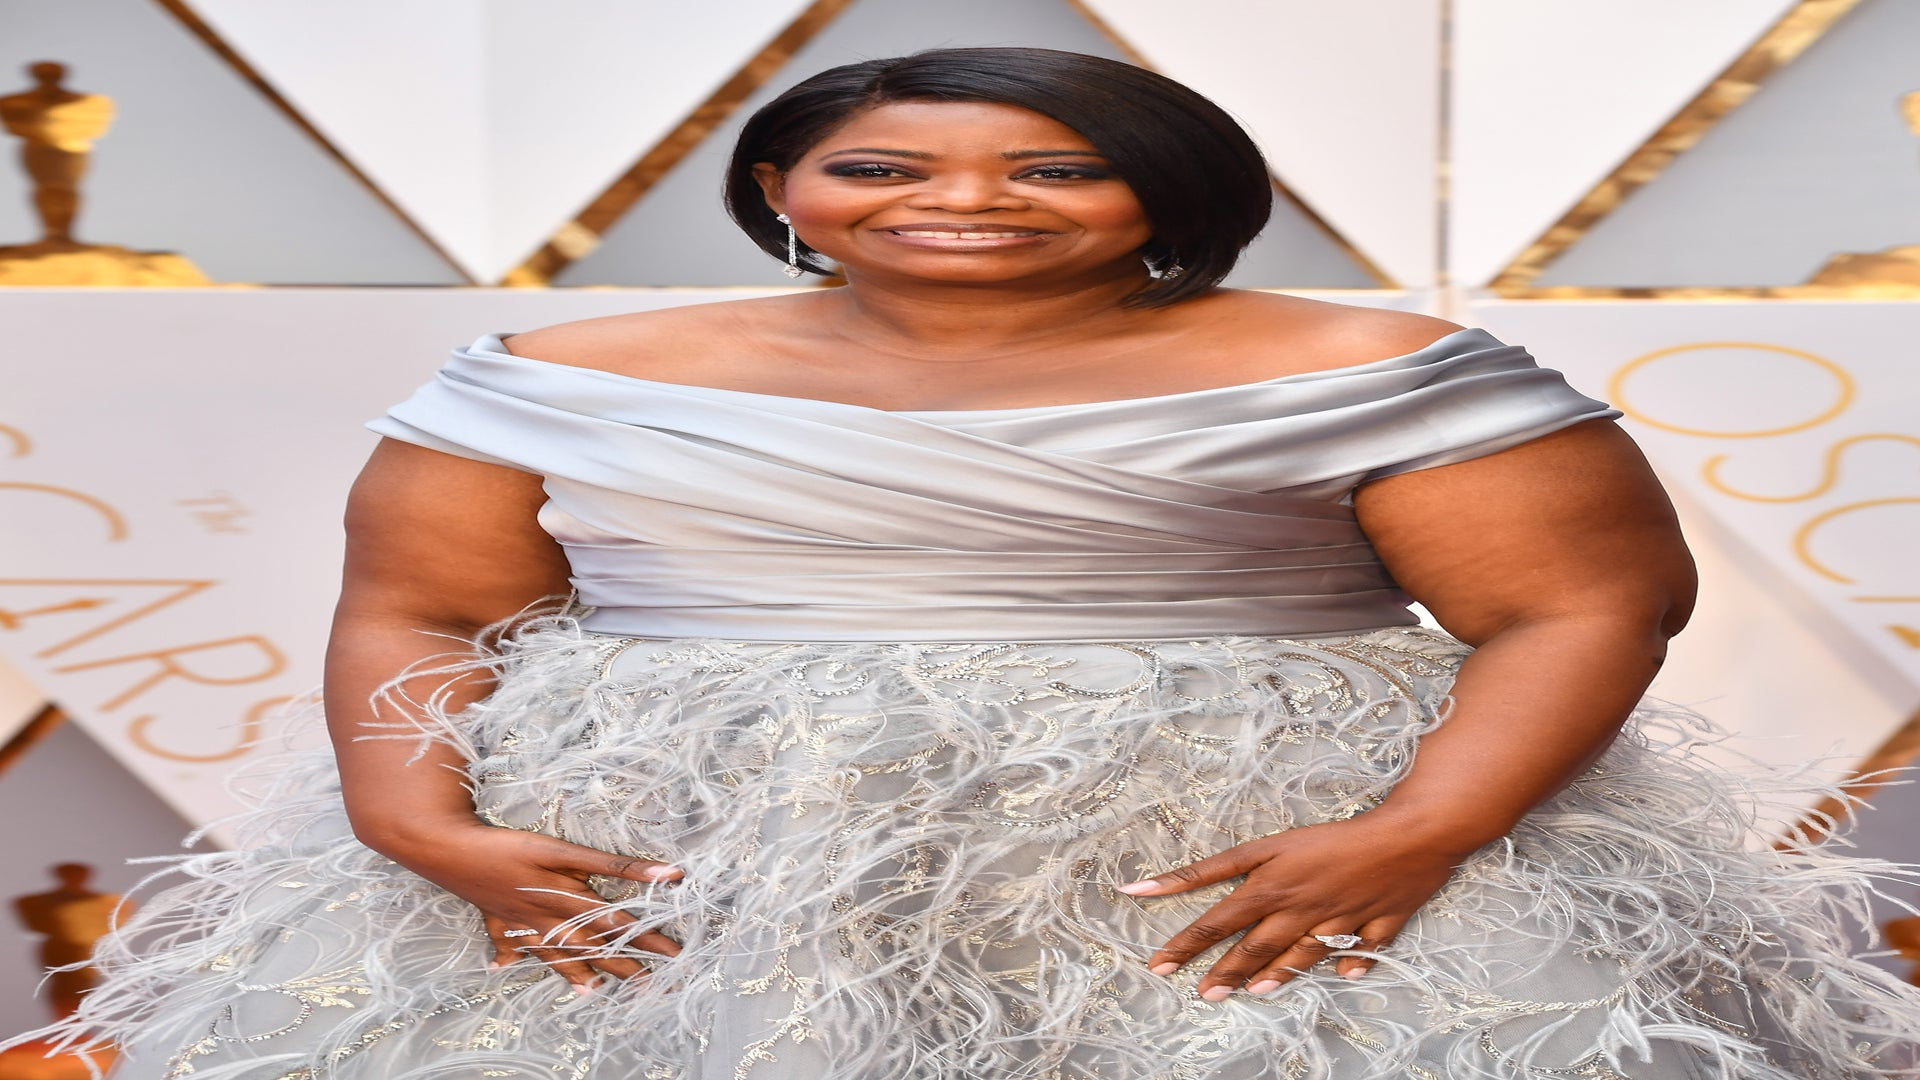 Octavia Spencer is a Silver Belle on Oscars 2017 Red Carpet